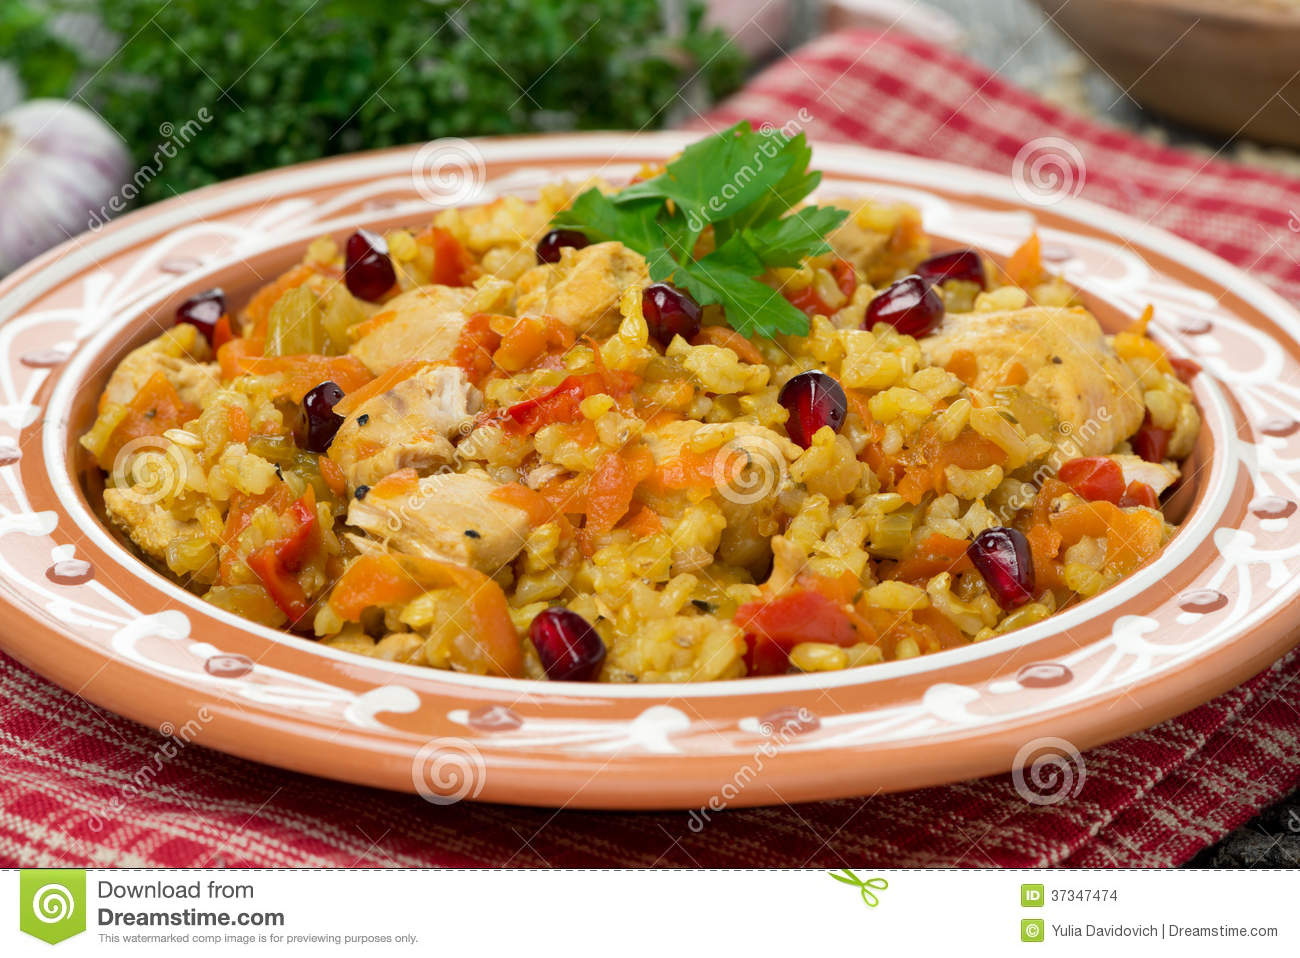 Pilaf with vegetables, chicken and pomegranate, close-up